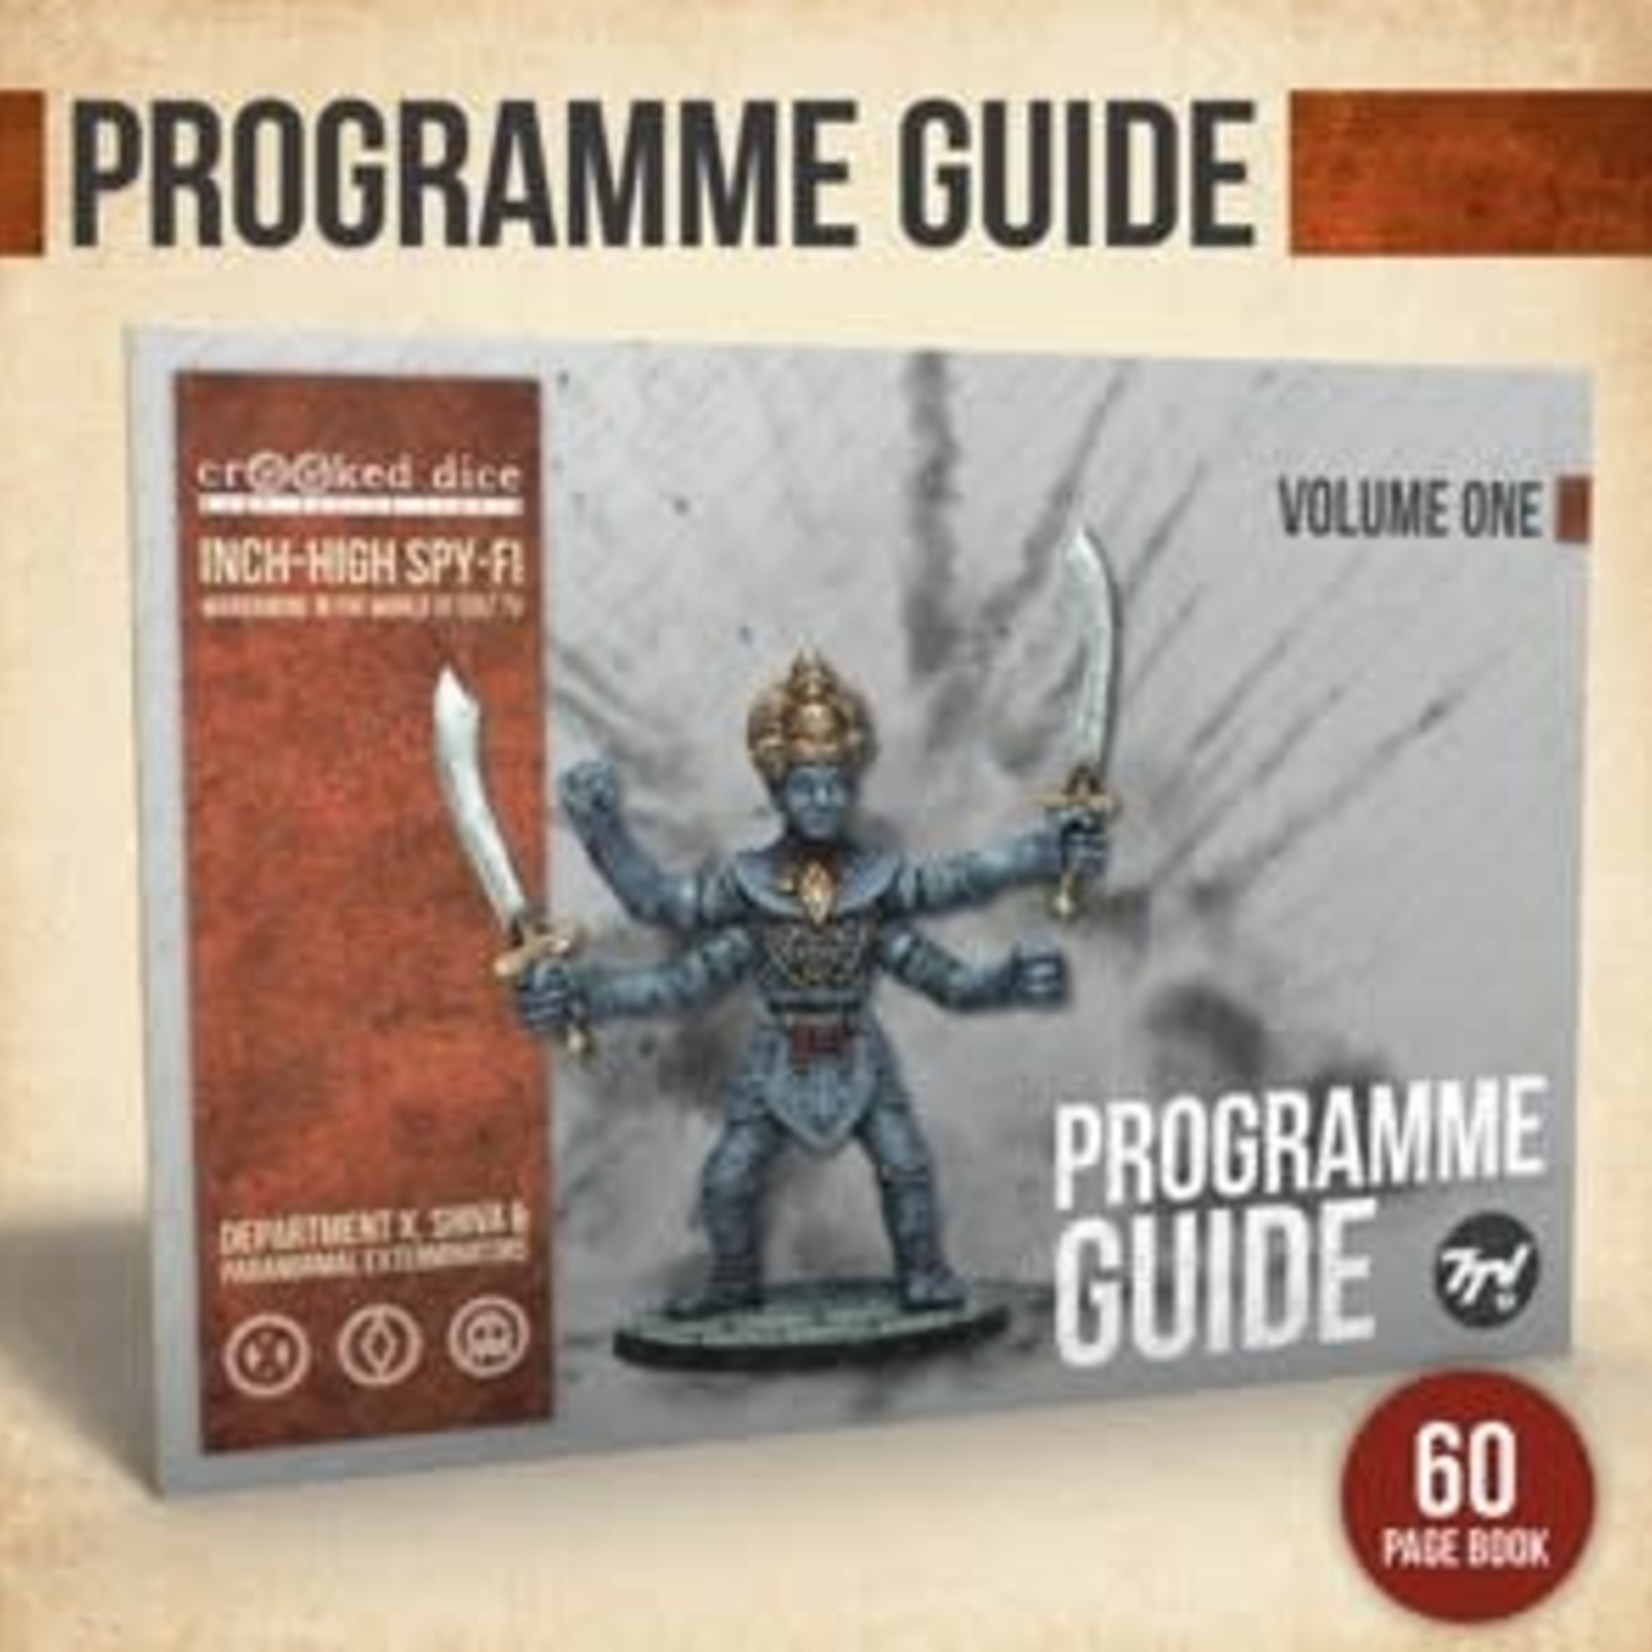 Programme Guide Volume 1